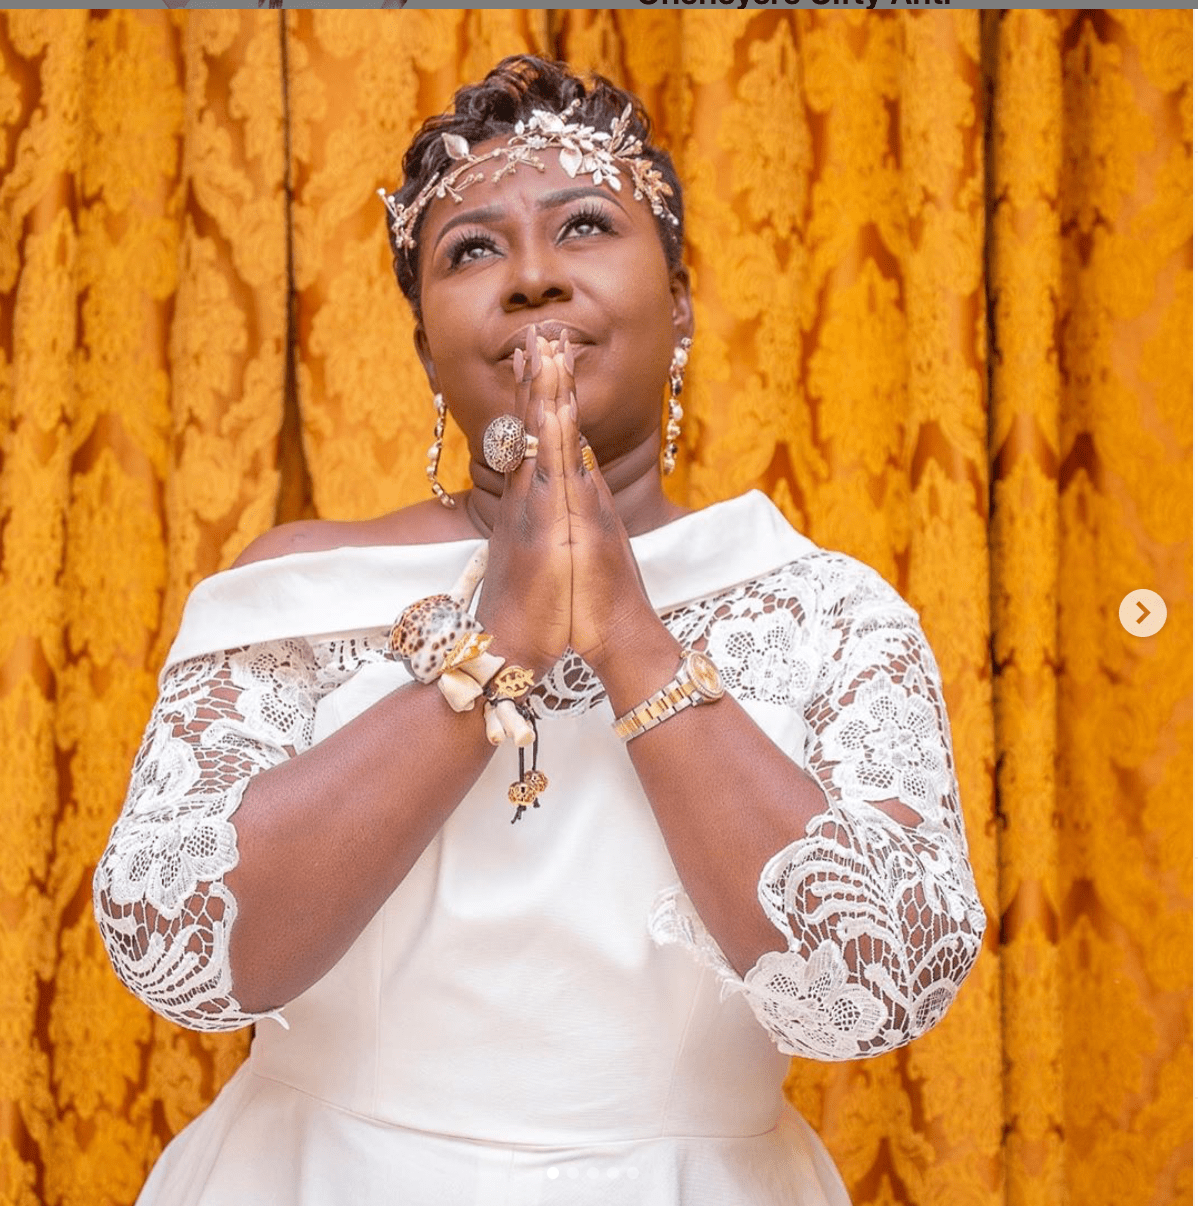 #Pics: Gifty Anti celebrates her golden jubilee with angelic photos